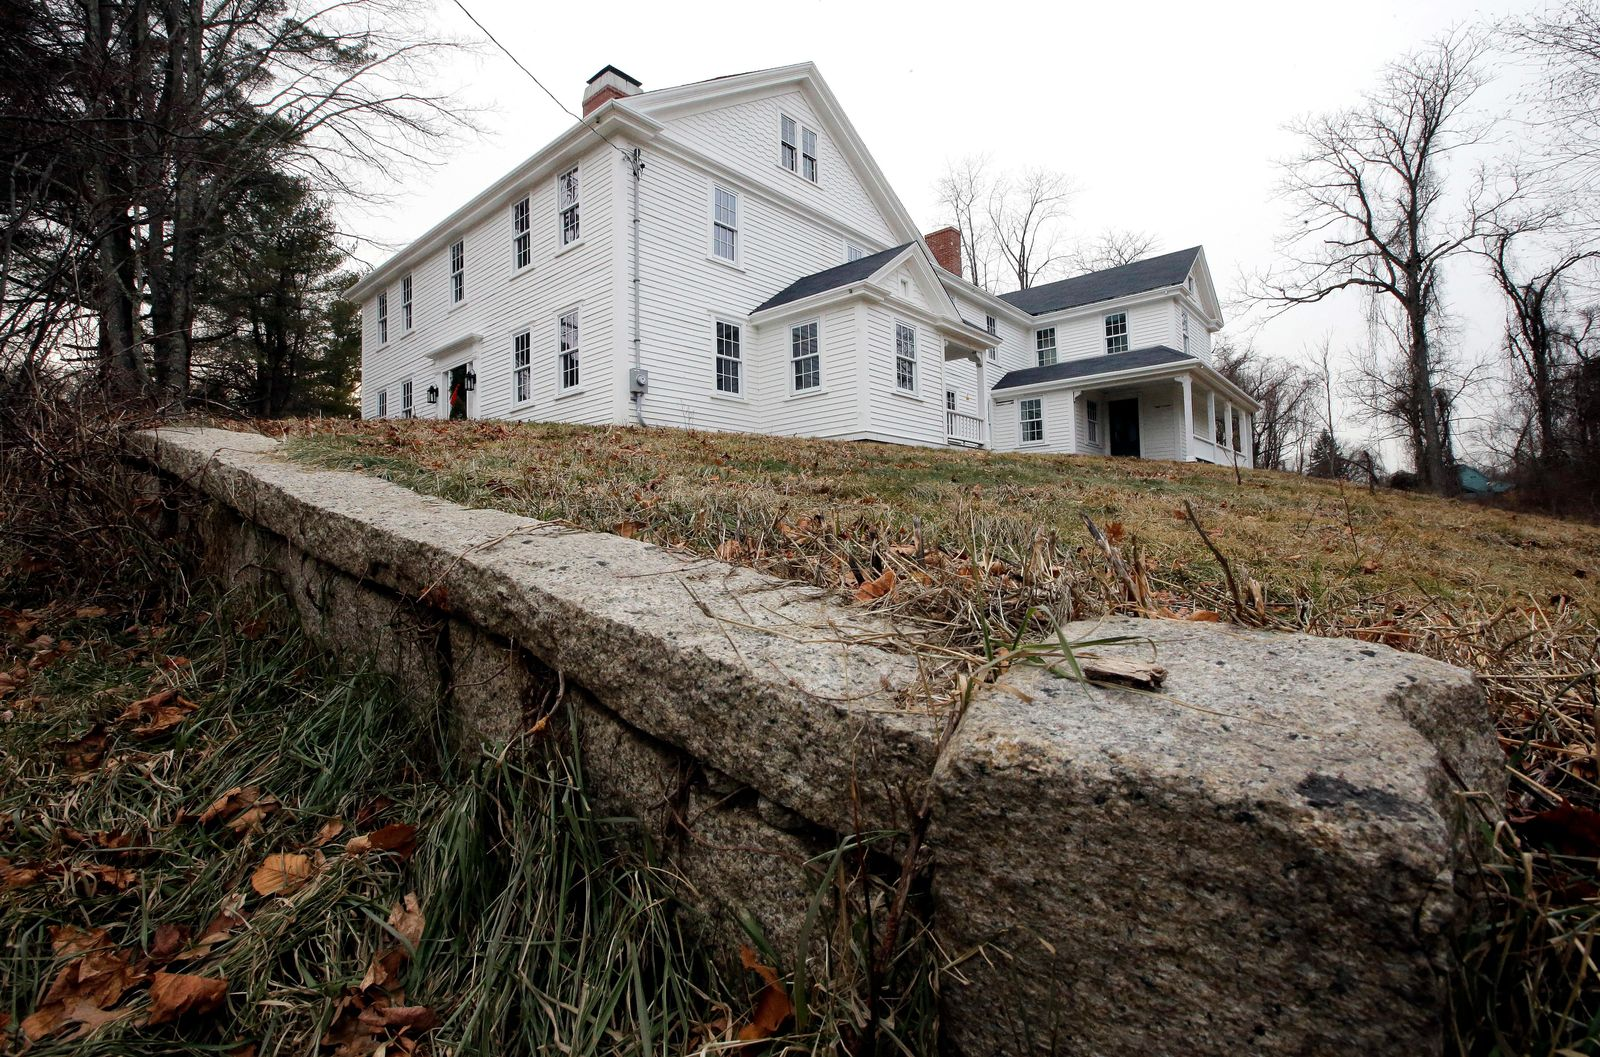 In this Thursday, Dec. 13, 2018 photo a wall stands near the home where Sarah Clayes lived, in Framingham, Mass., after leaving Salem, Mass., following the 1692 witch trials.  Clayes was jailed during the witch trials but was freed in 1693 when the hysteria died down. (AP Photo/Steven Senne)